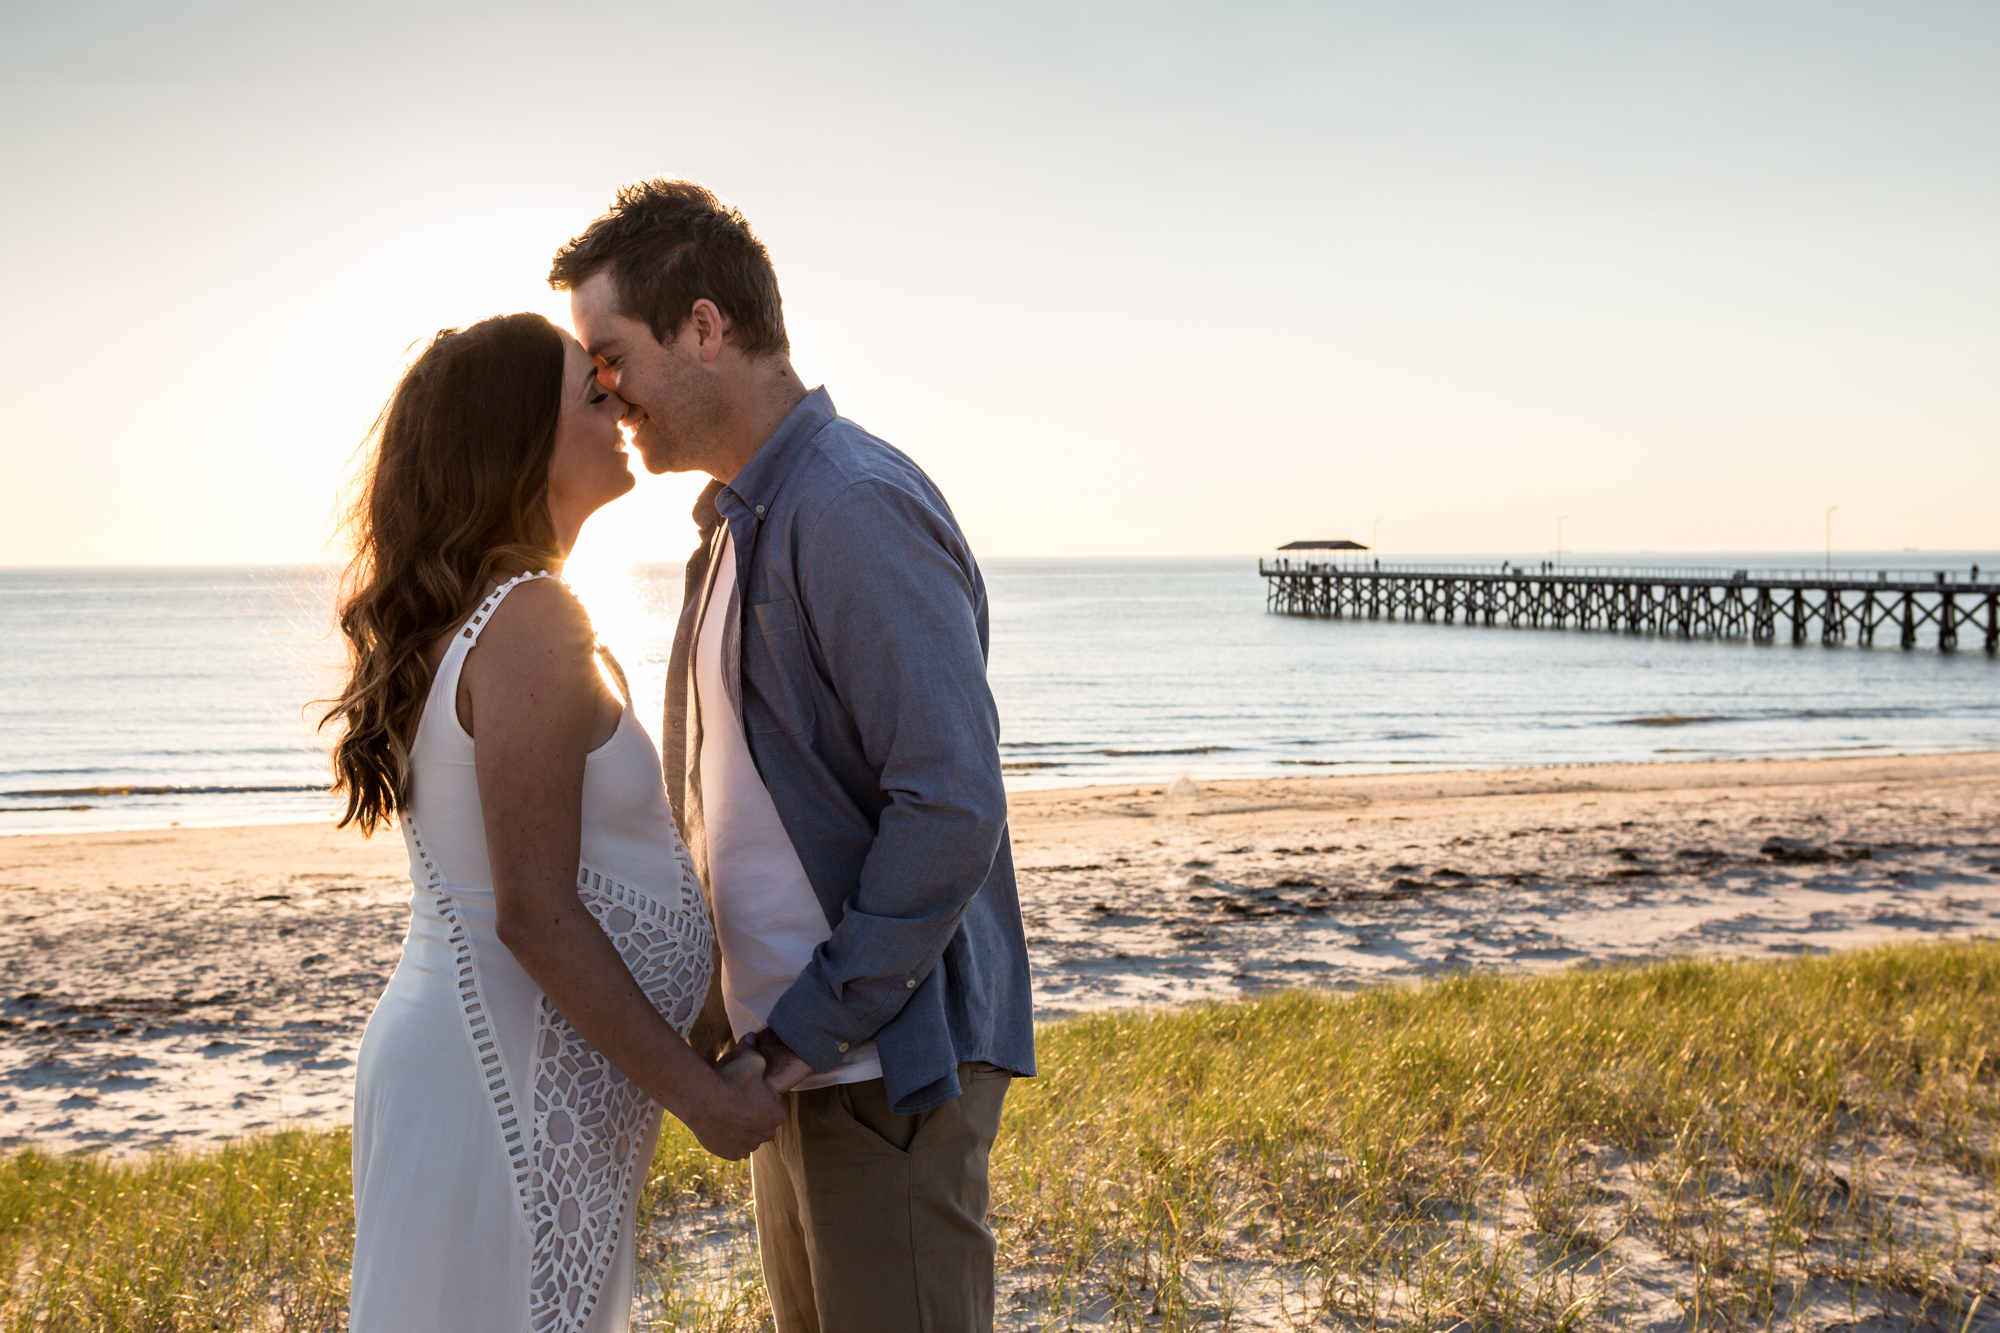 maternity_pregnancy_grange_beach_photography_natural_sunset_sand_adelaide_wedding_photographer-web-28